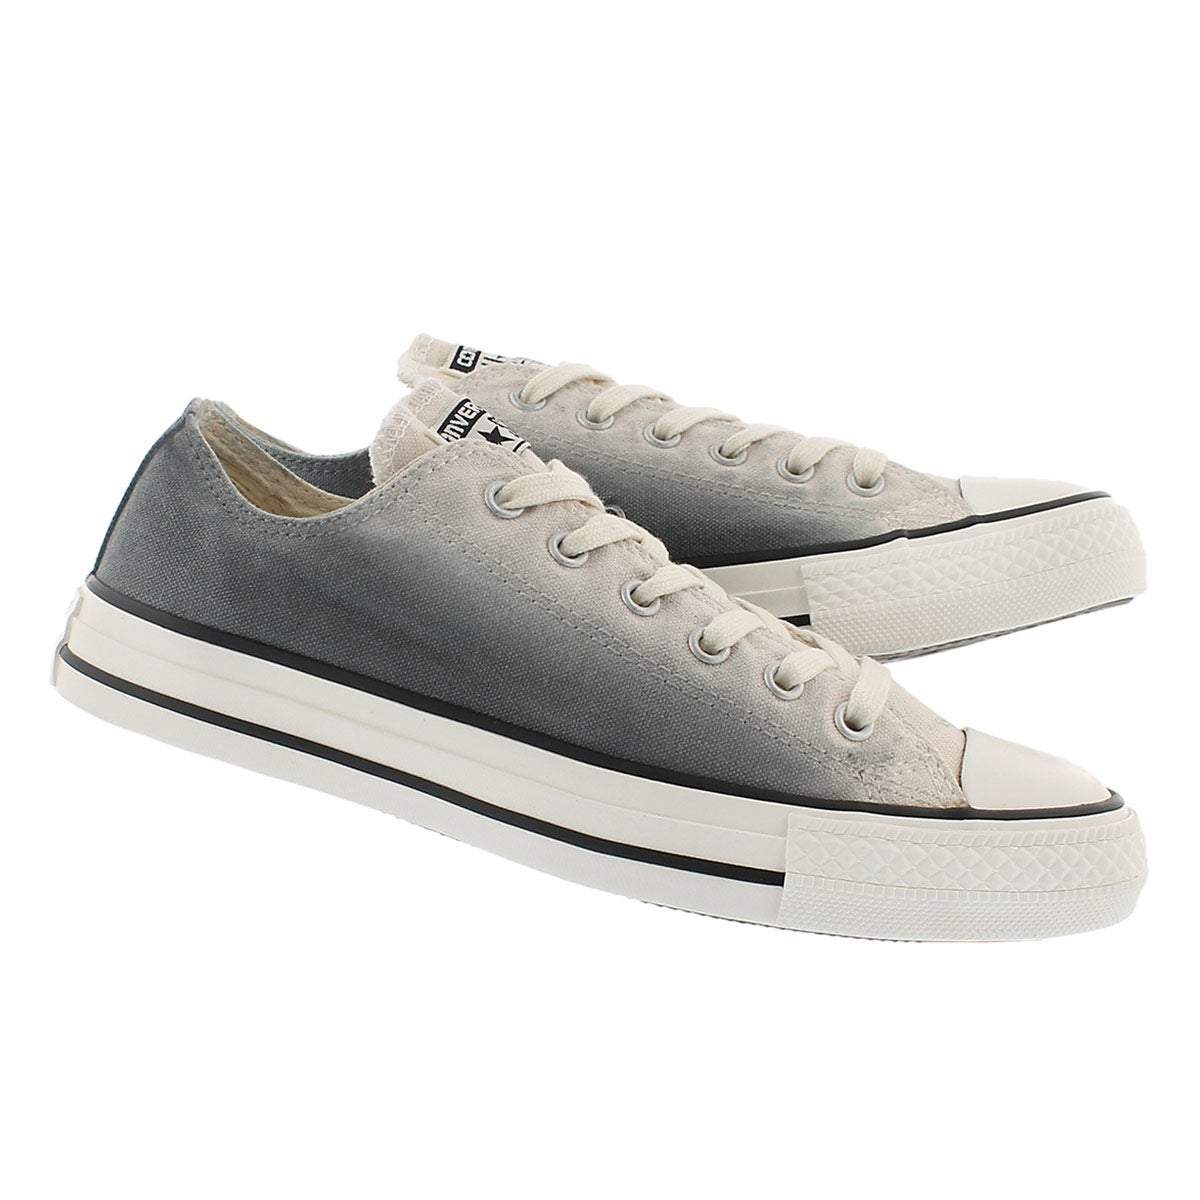 Lds CT AllStar SunsetWash gry/wht oxford